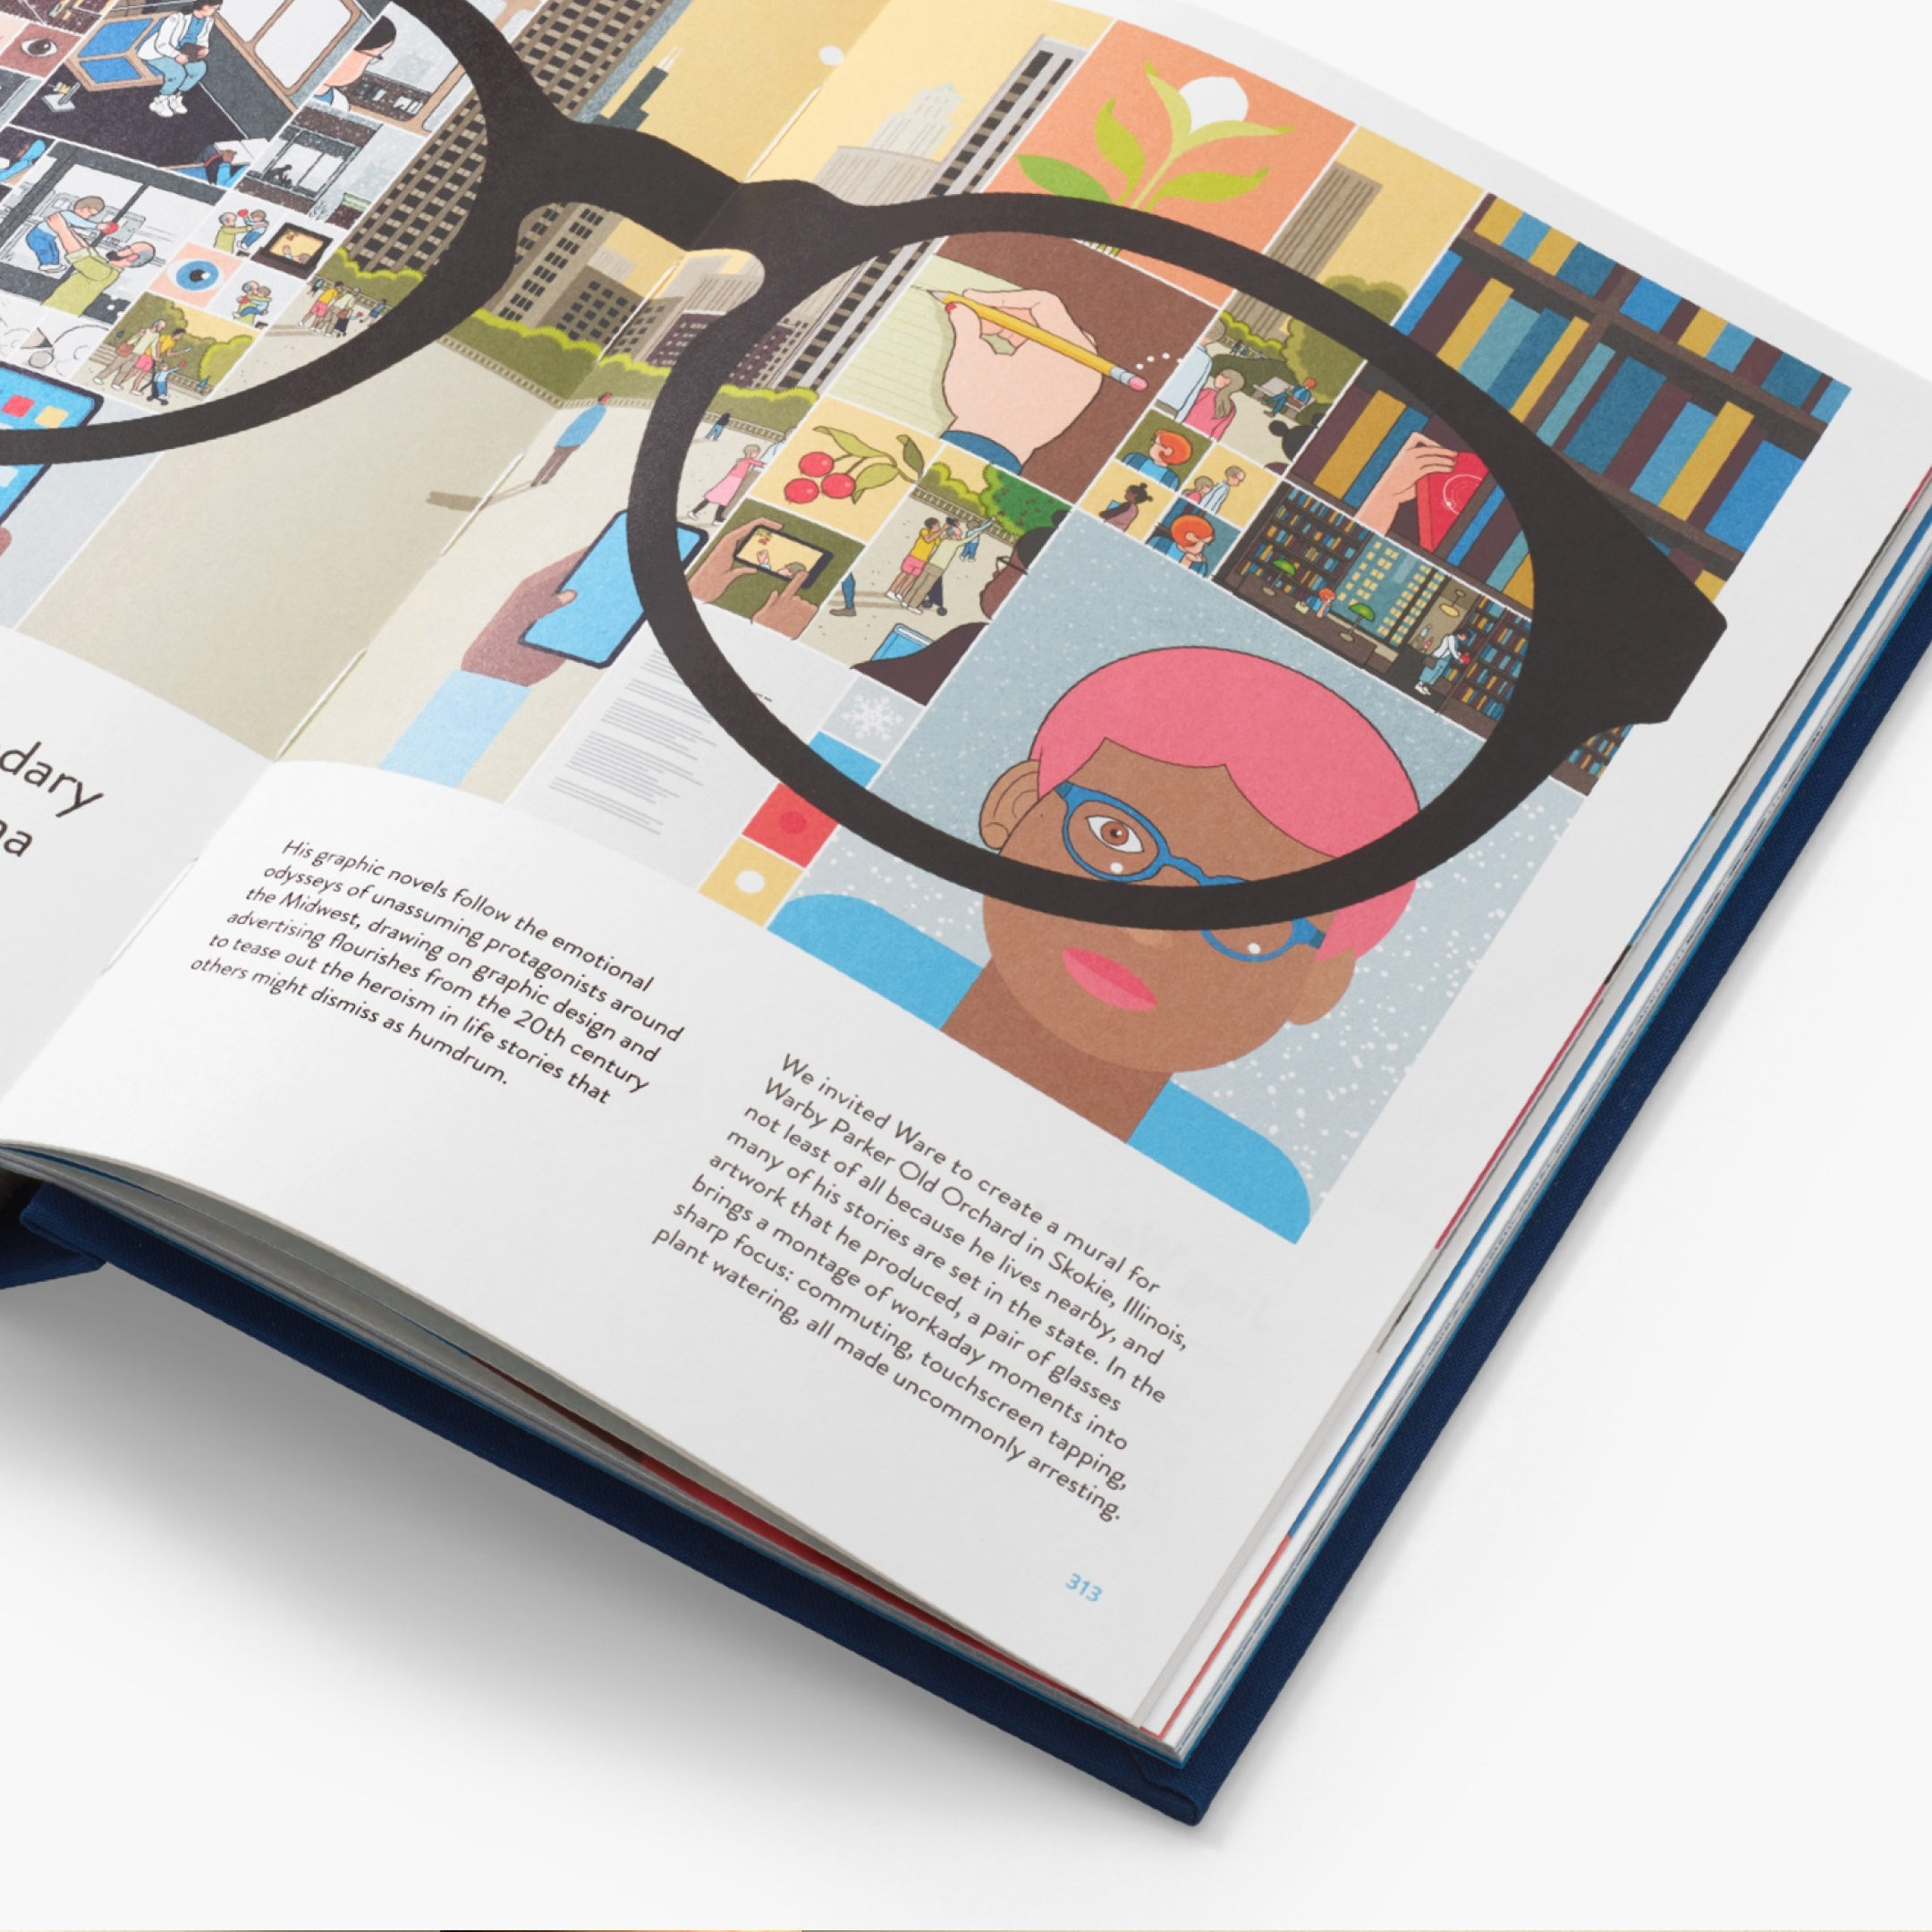 The Alphabet of Art Warby Parker book